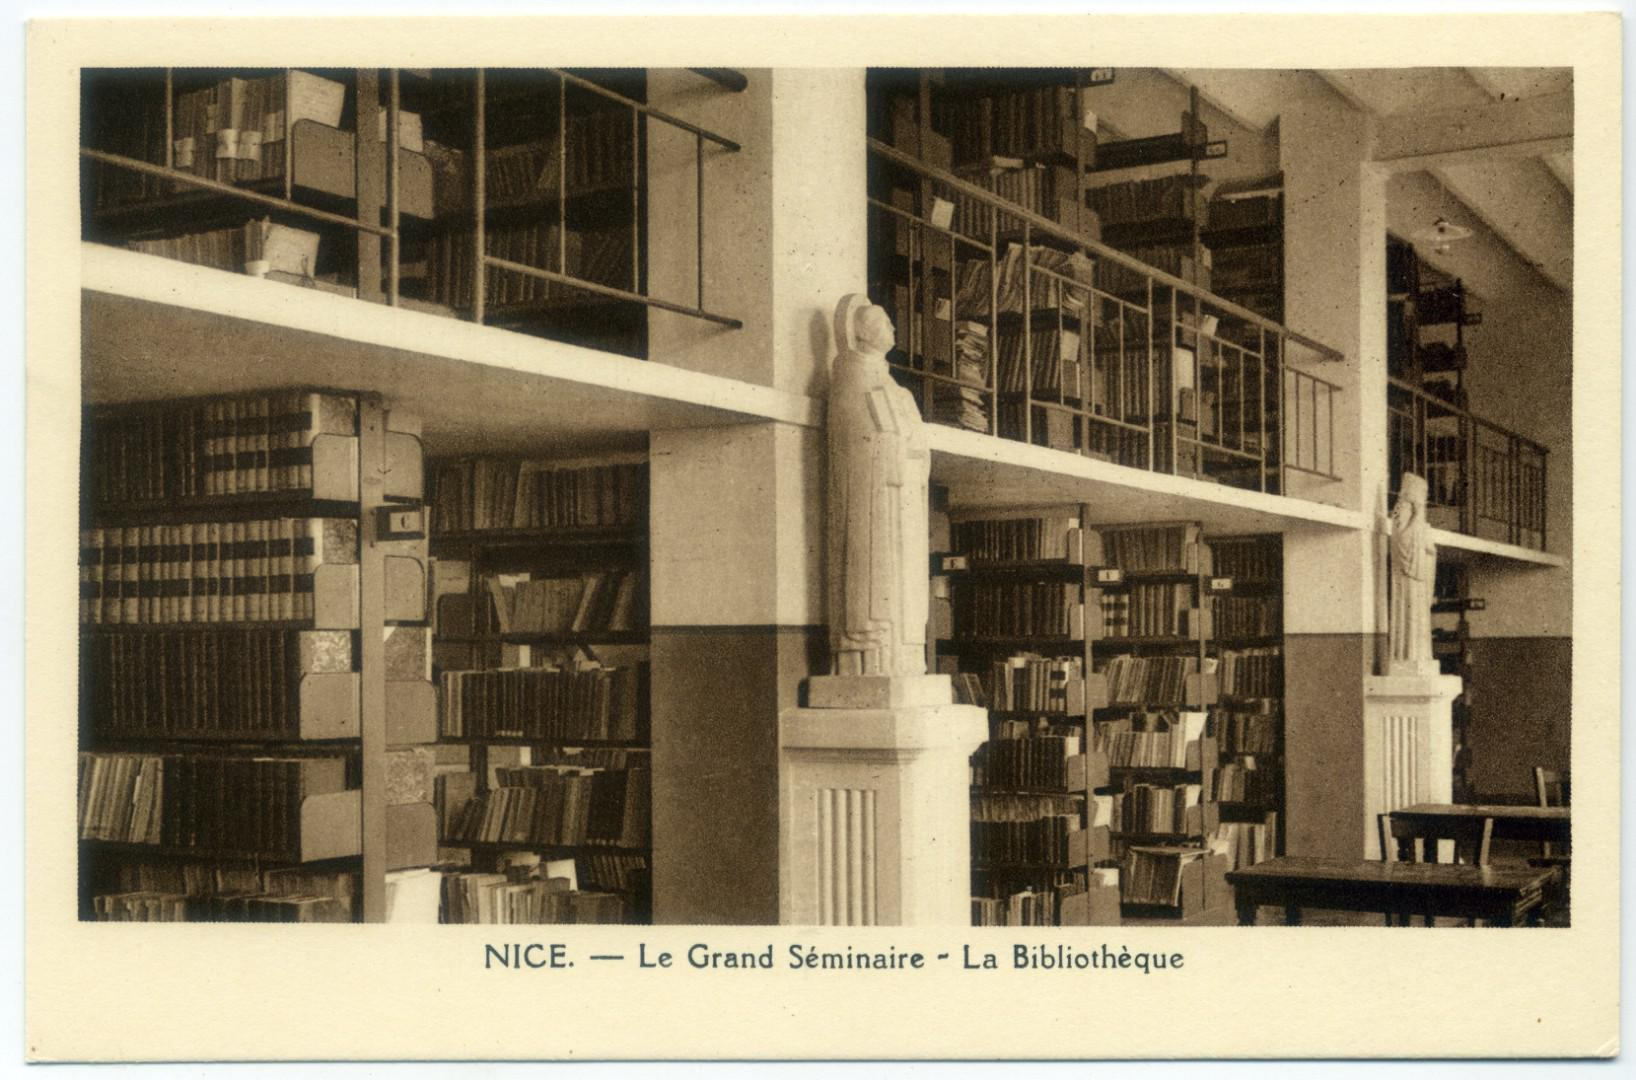 Nizza: Grand Seminaire - Bibliotheque